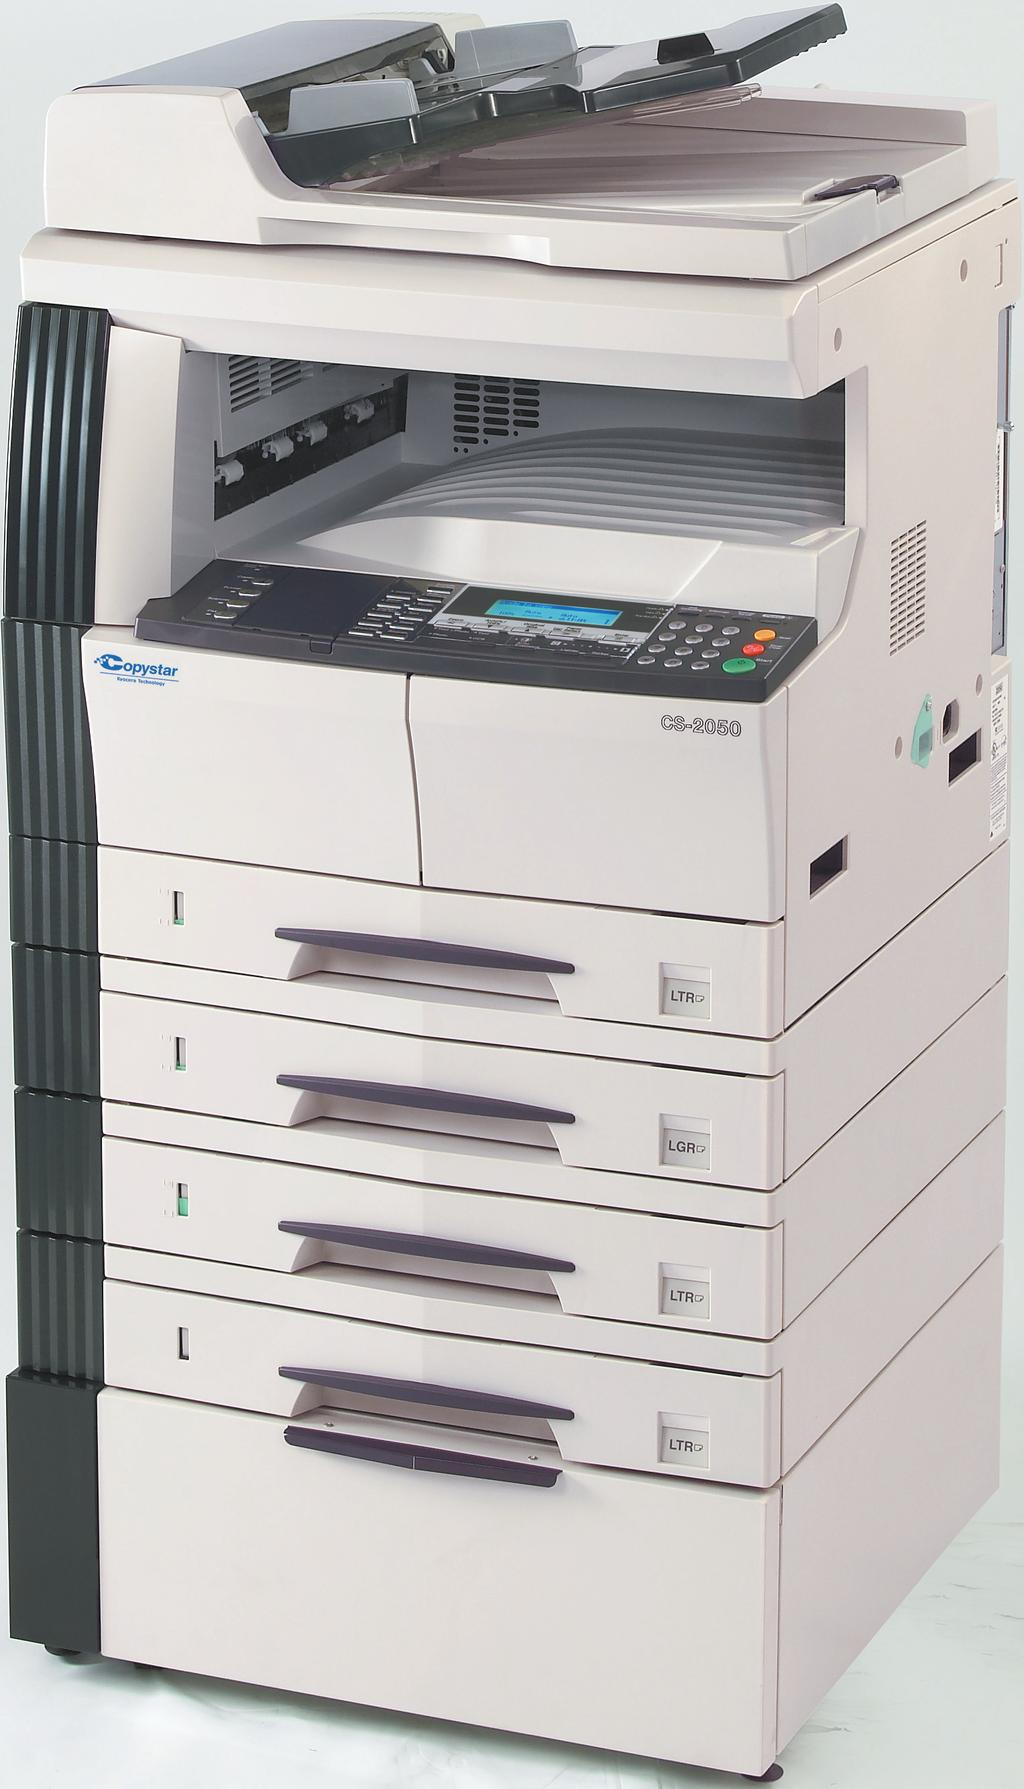 Fast Output of 20 pages or 16 pages per minute Standard Network Print The CS-2050 and the CS-1650 offer powerful, flexible imaging Optional Network Scanning and Fax capabilities, designed